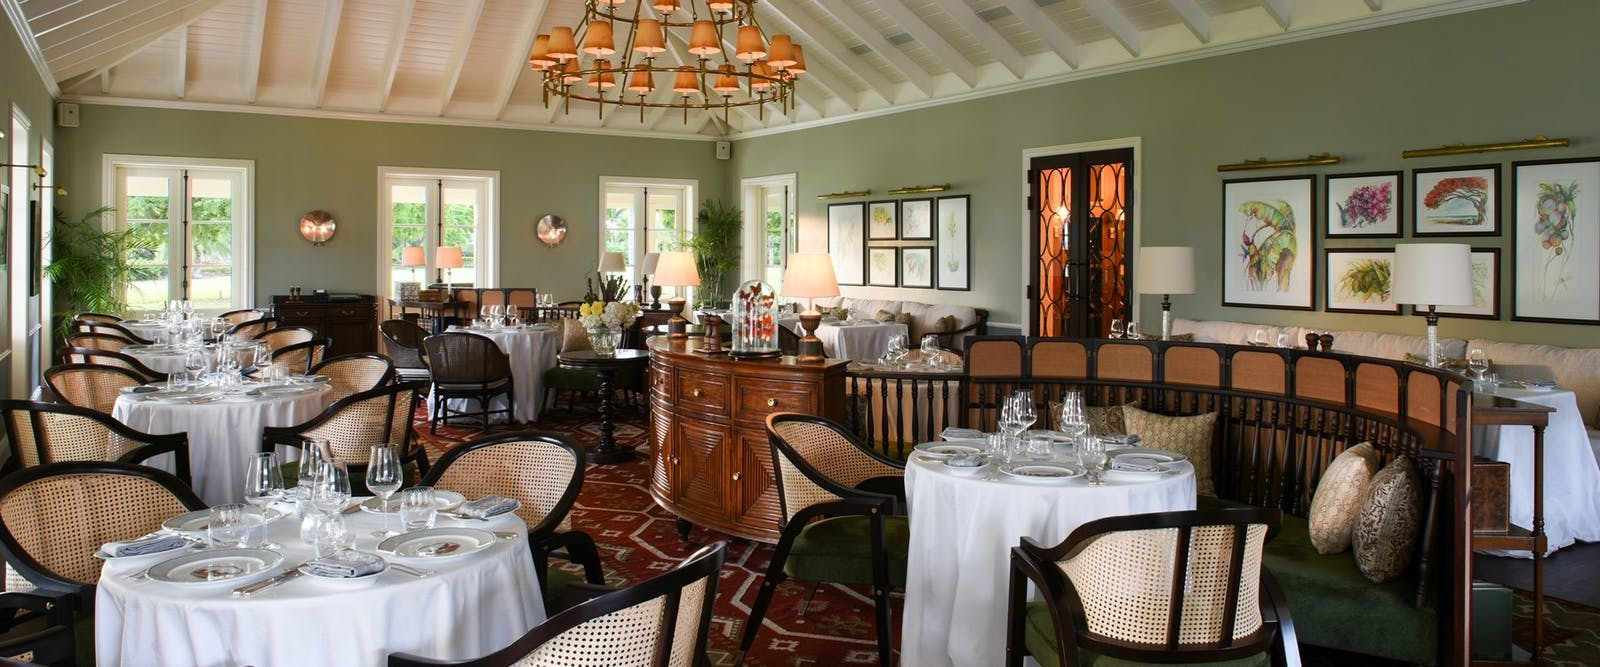 Estate Main House Dining at Jumby Bay Island, Antigua